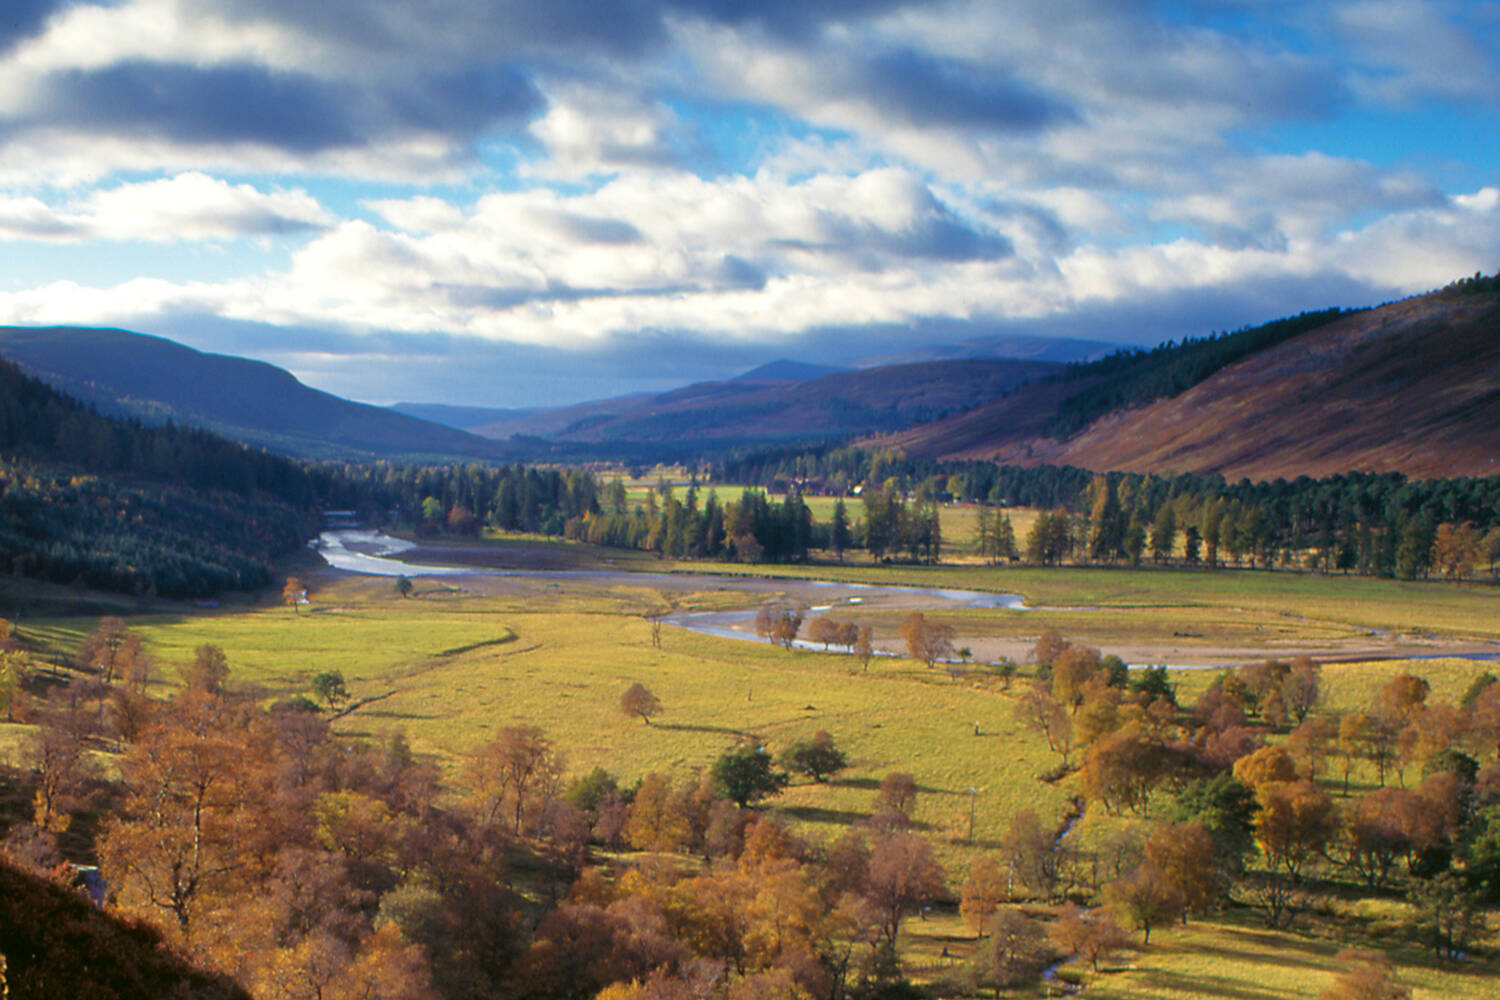 A view looking down a wide glen on Mar Lodge Estate. A river winds its way through the centre, with trees on the banks either side and heather-covered hills rising into the distance.